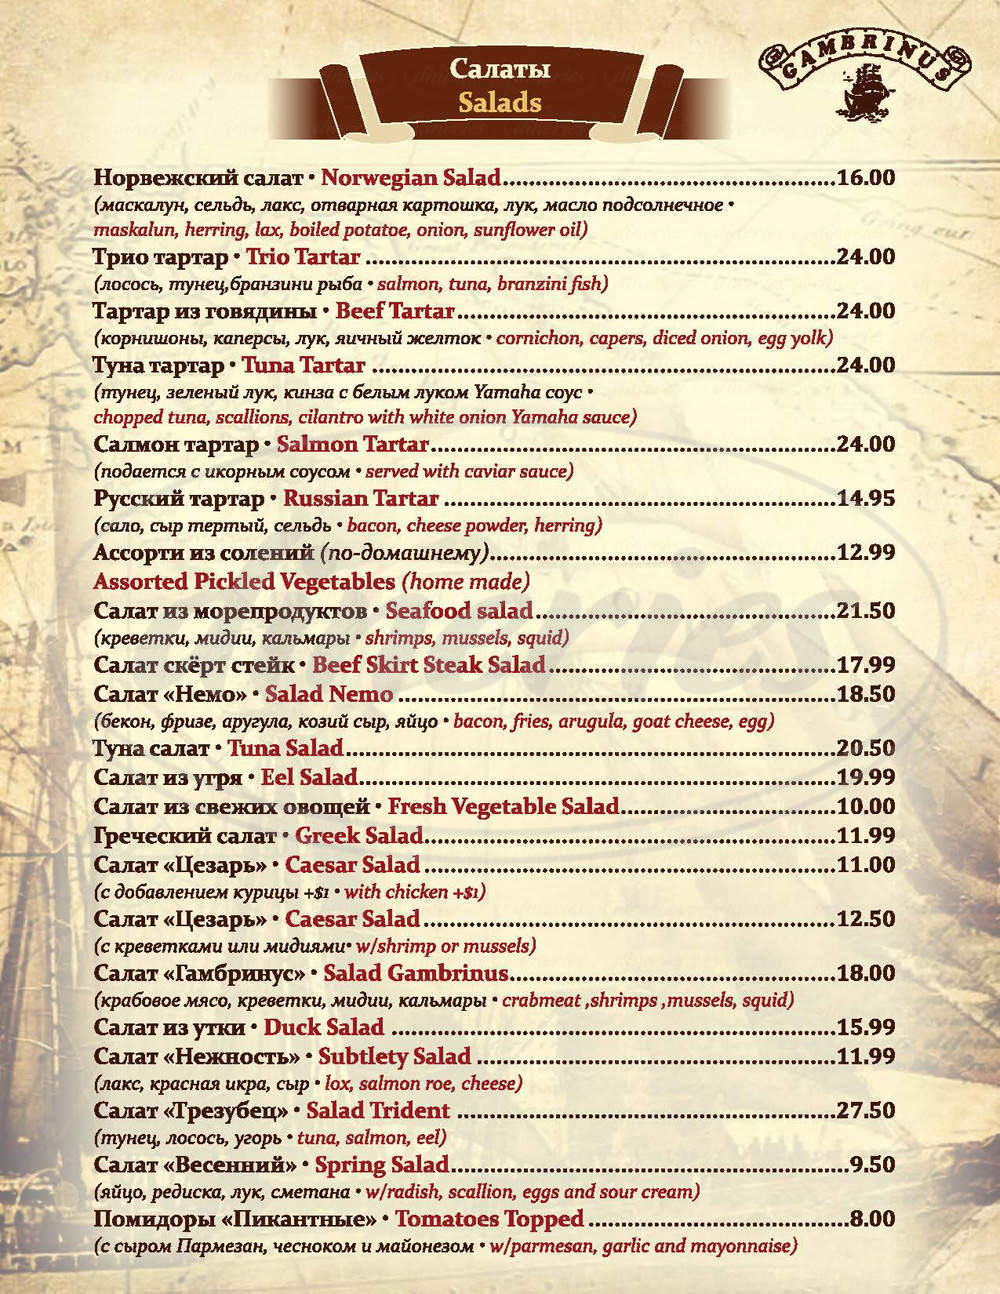 menu for Gambrinus